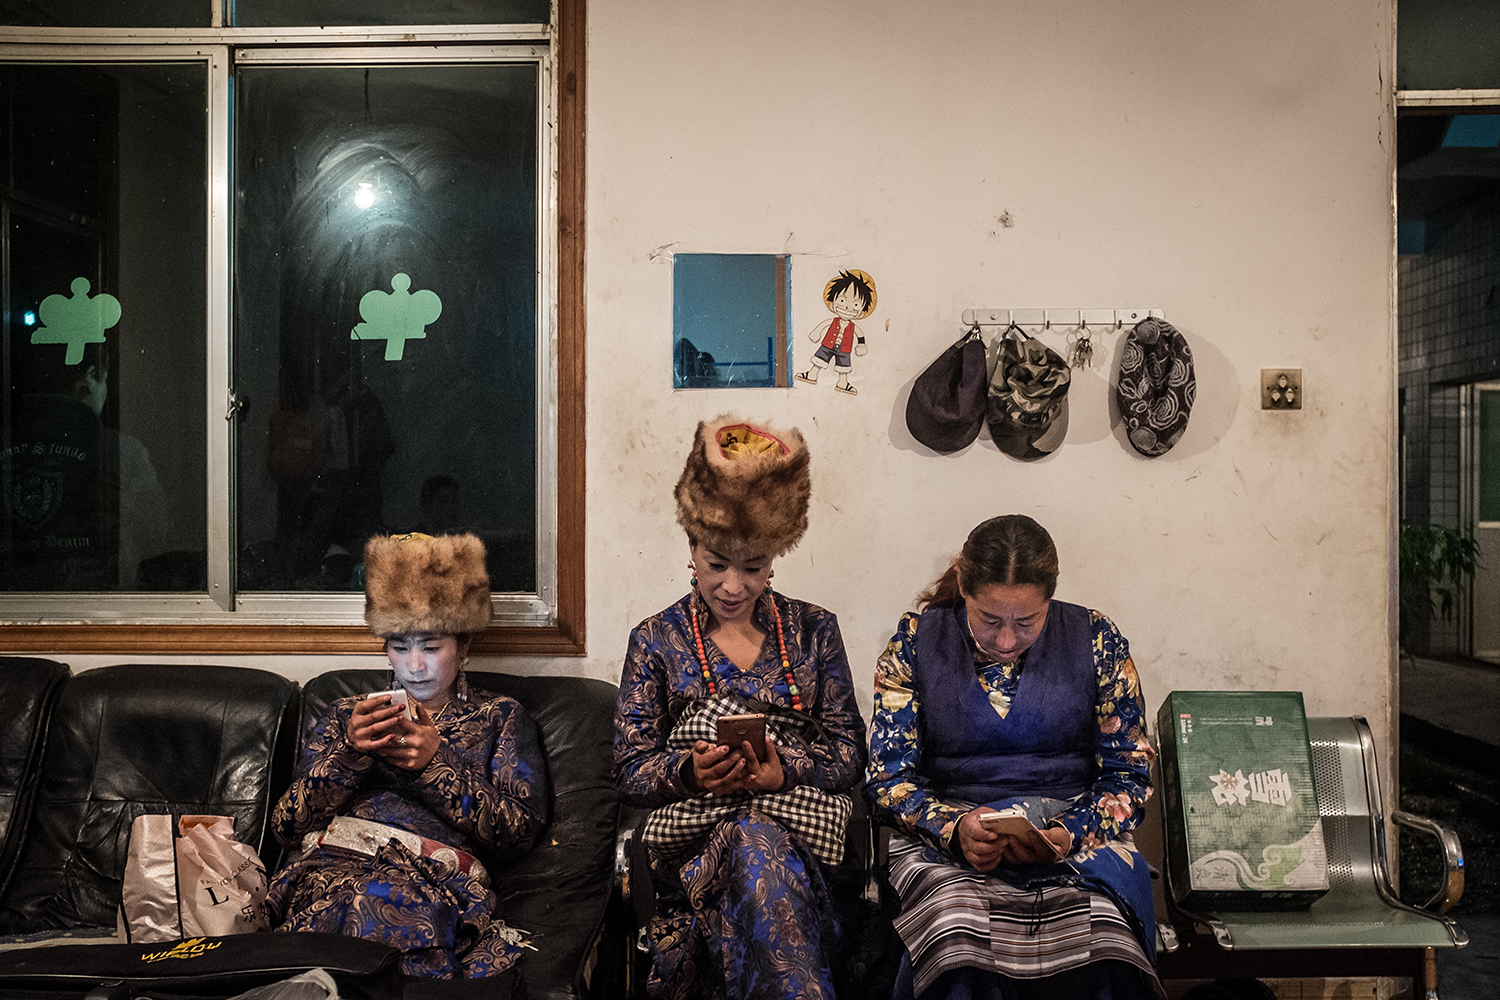 Tibetan women wait for a party hosted by Kun to celebrate the mining machines' upgrade, September 26, 2016.